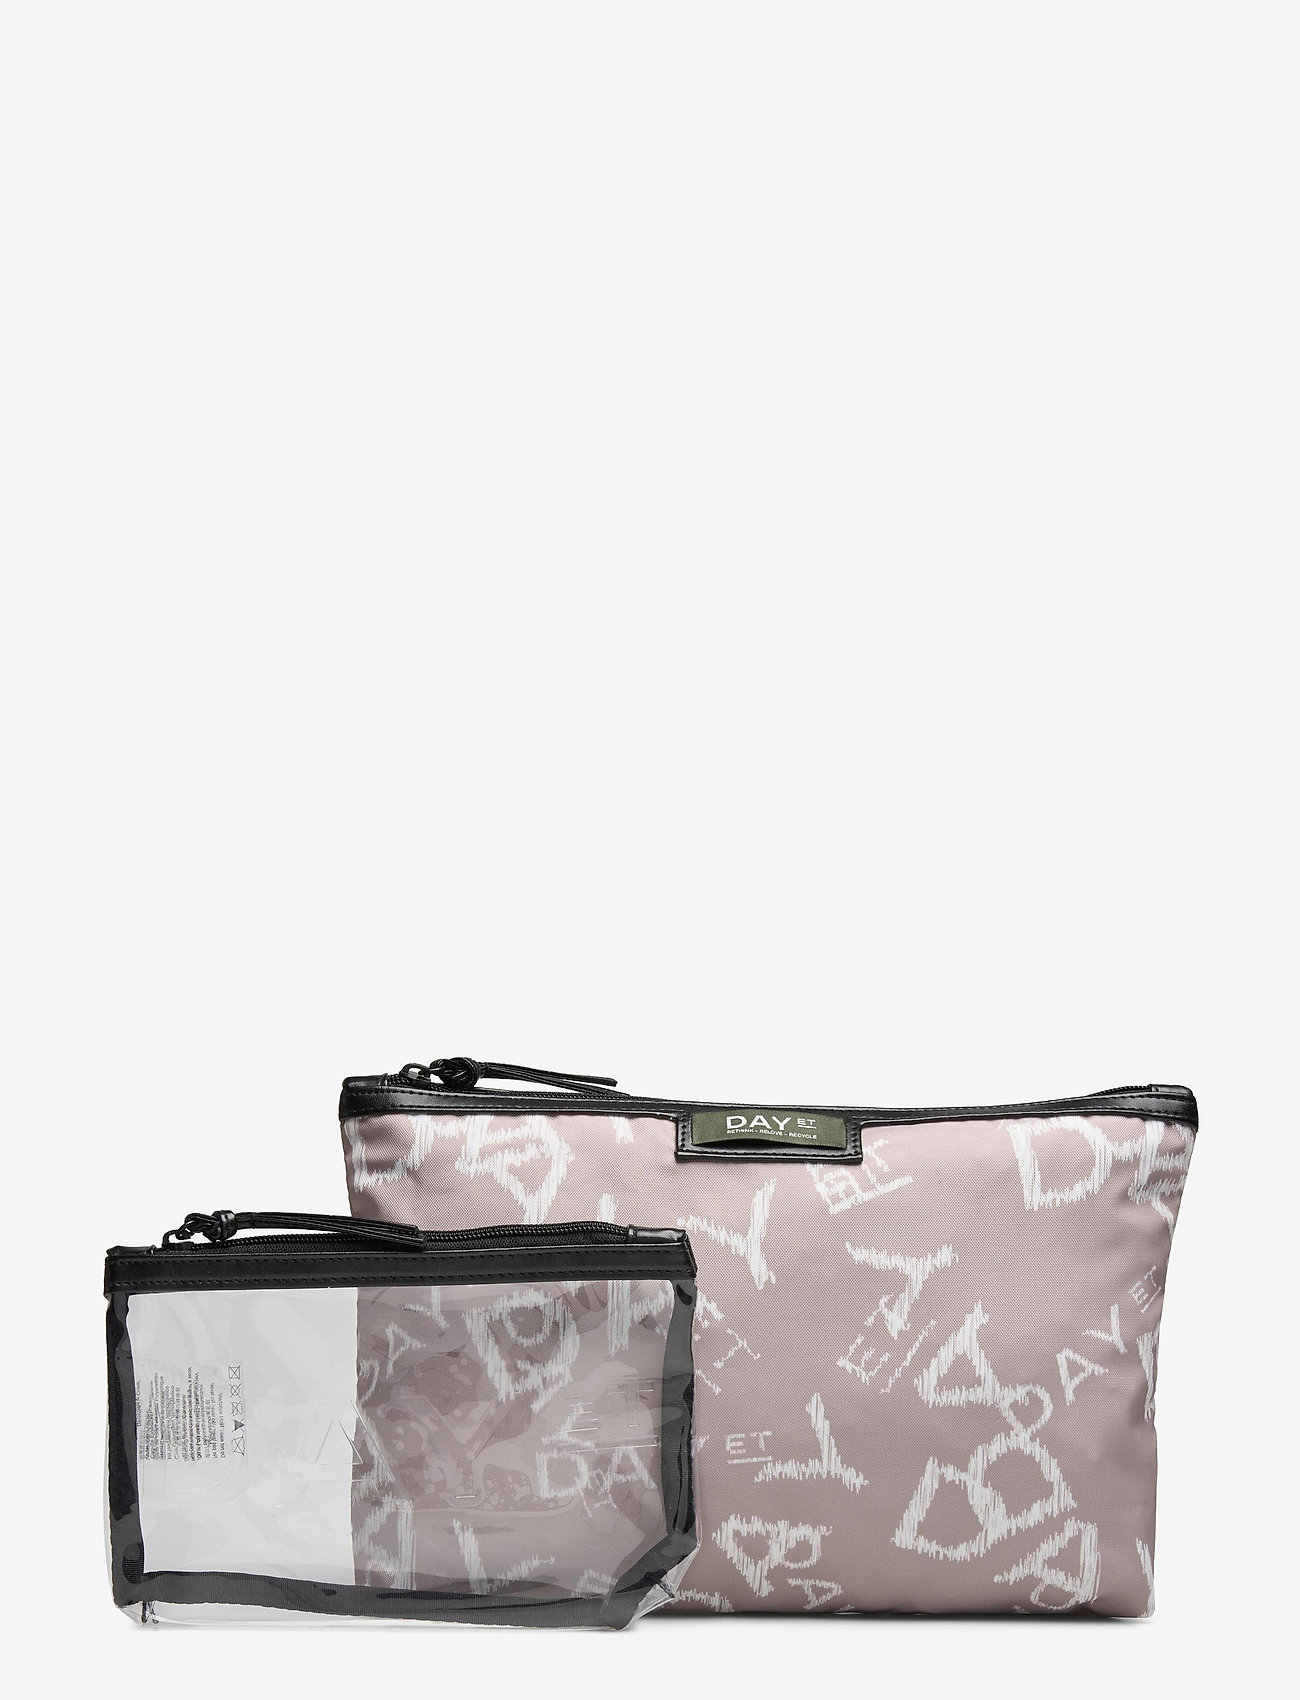 DAY et - Day Gweneth RE-P Sketch SmallSe - bags - blush - 1